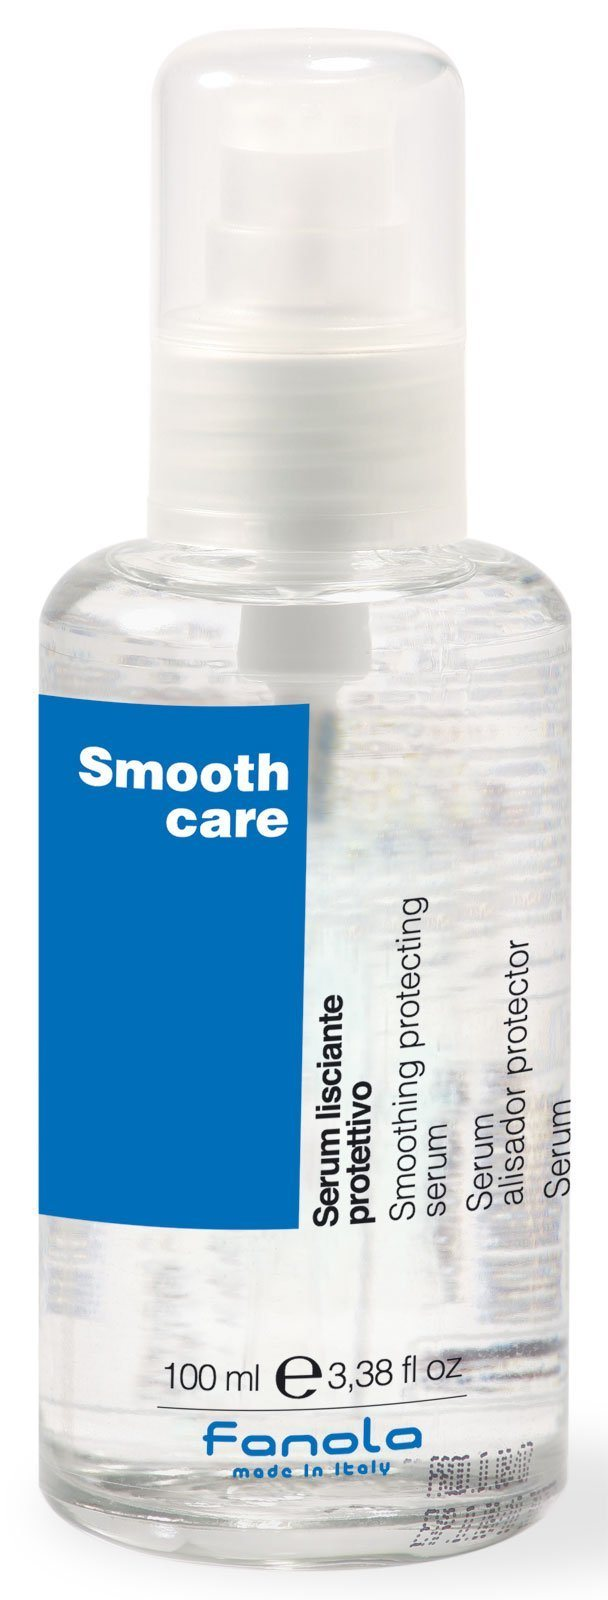 Fanola Smooth Care Protecting Serum, 100 ml Hair Treatments Fanola 100 ml